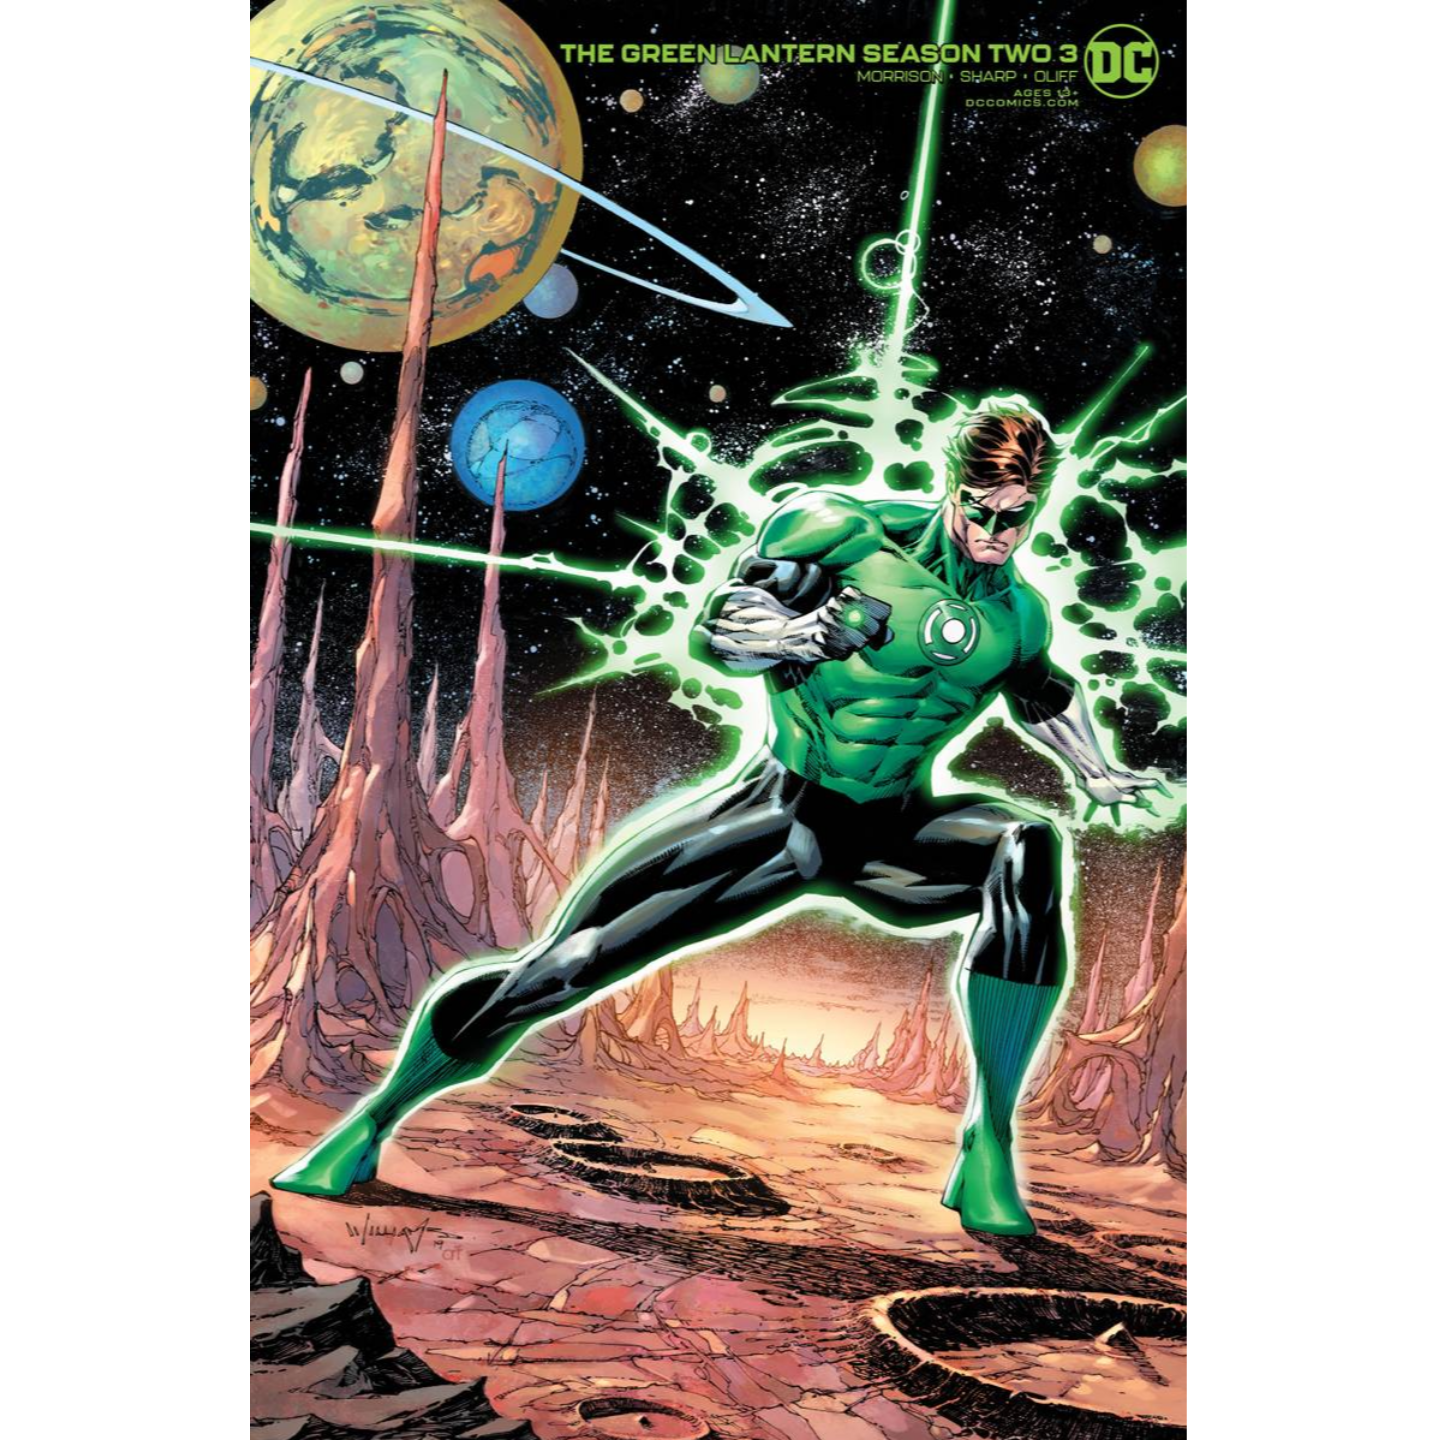 GREEN LANTERN SEASON 2 #3 (OF 12) SCOTT WILLIAMS VAR ED